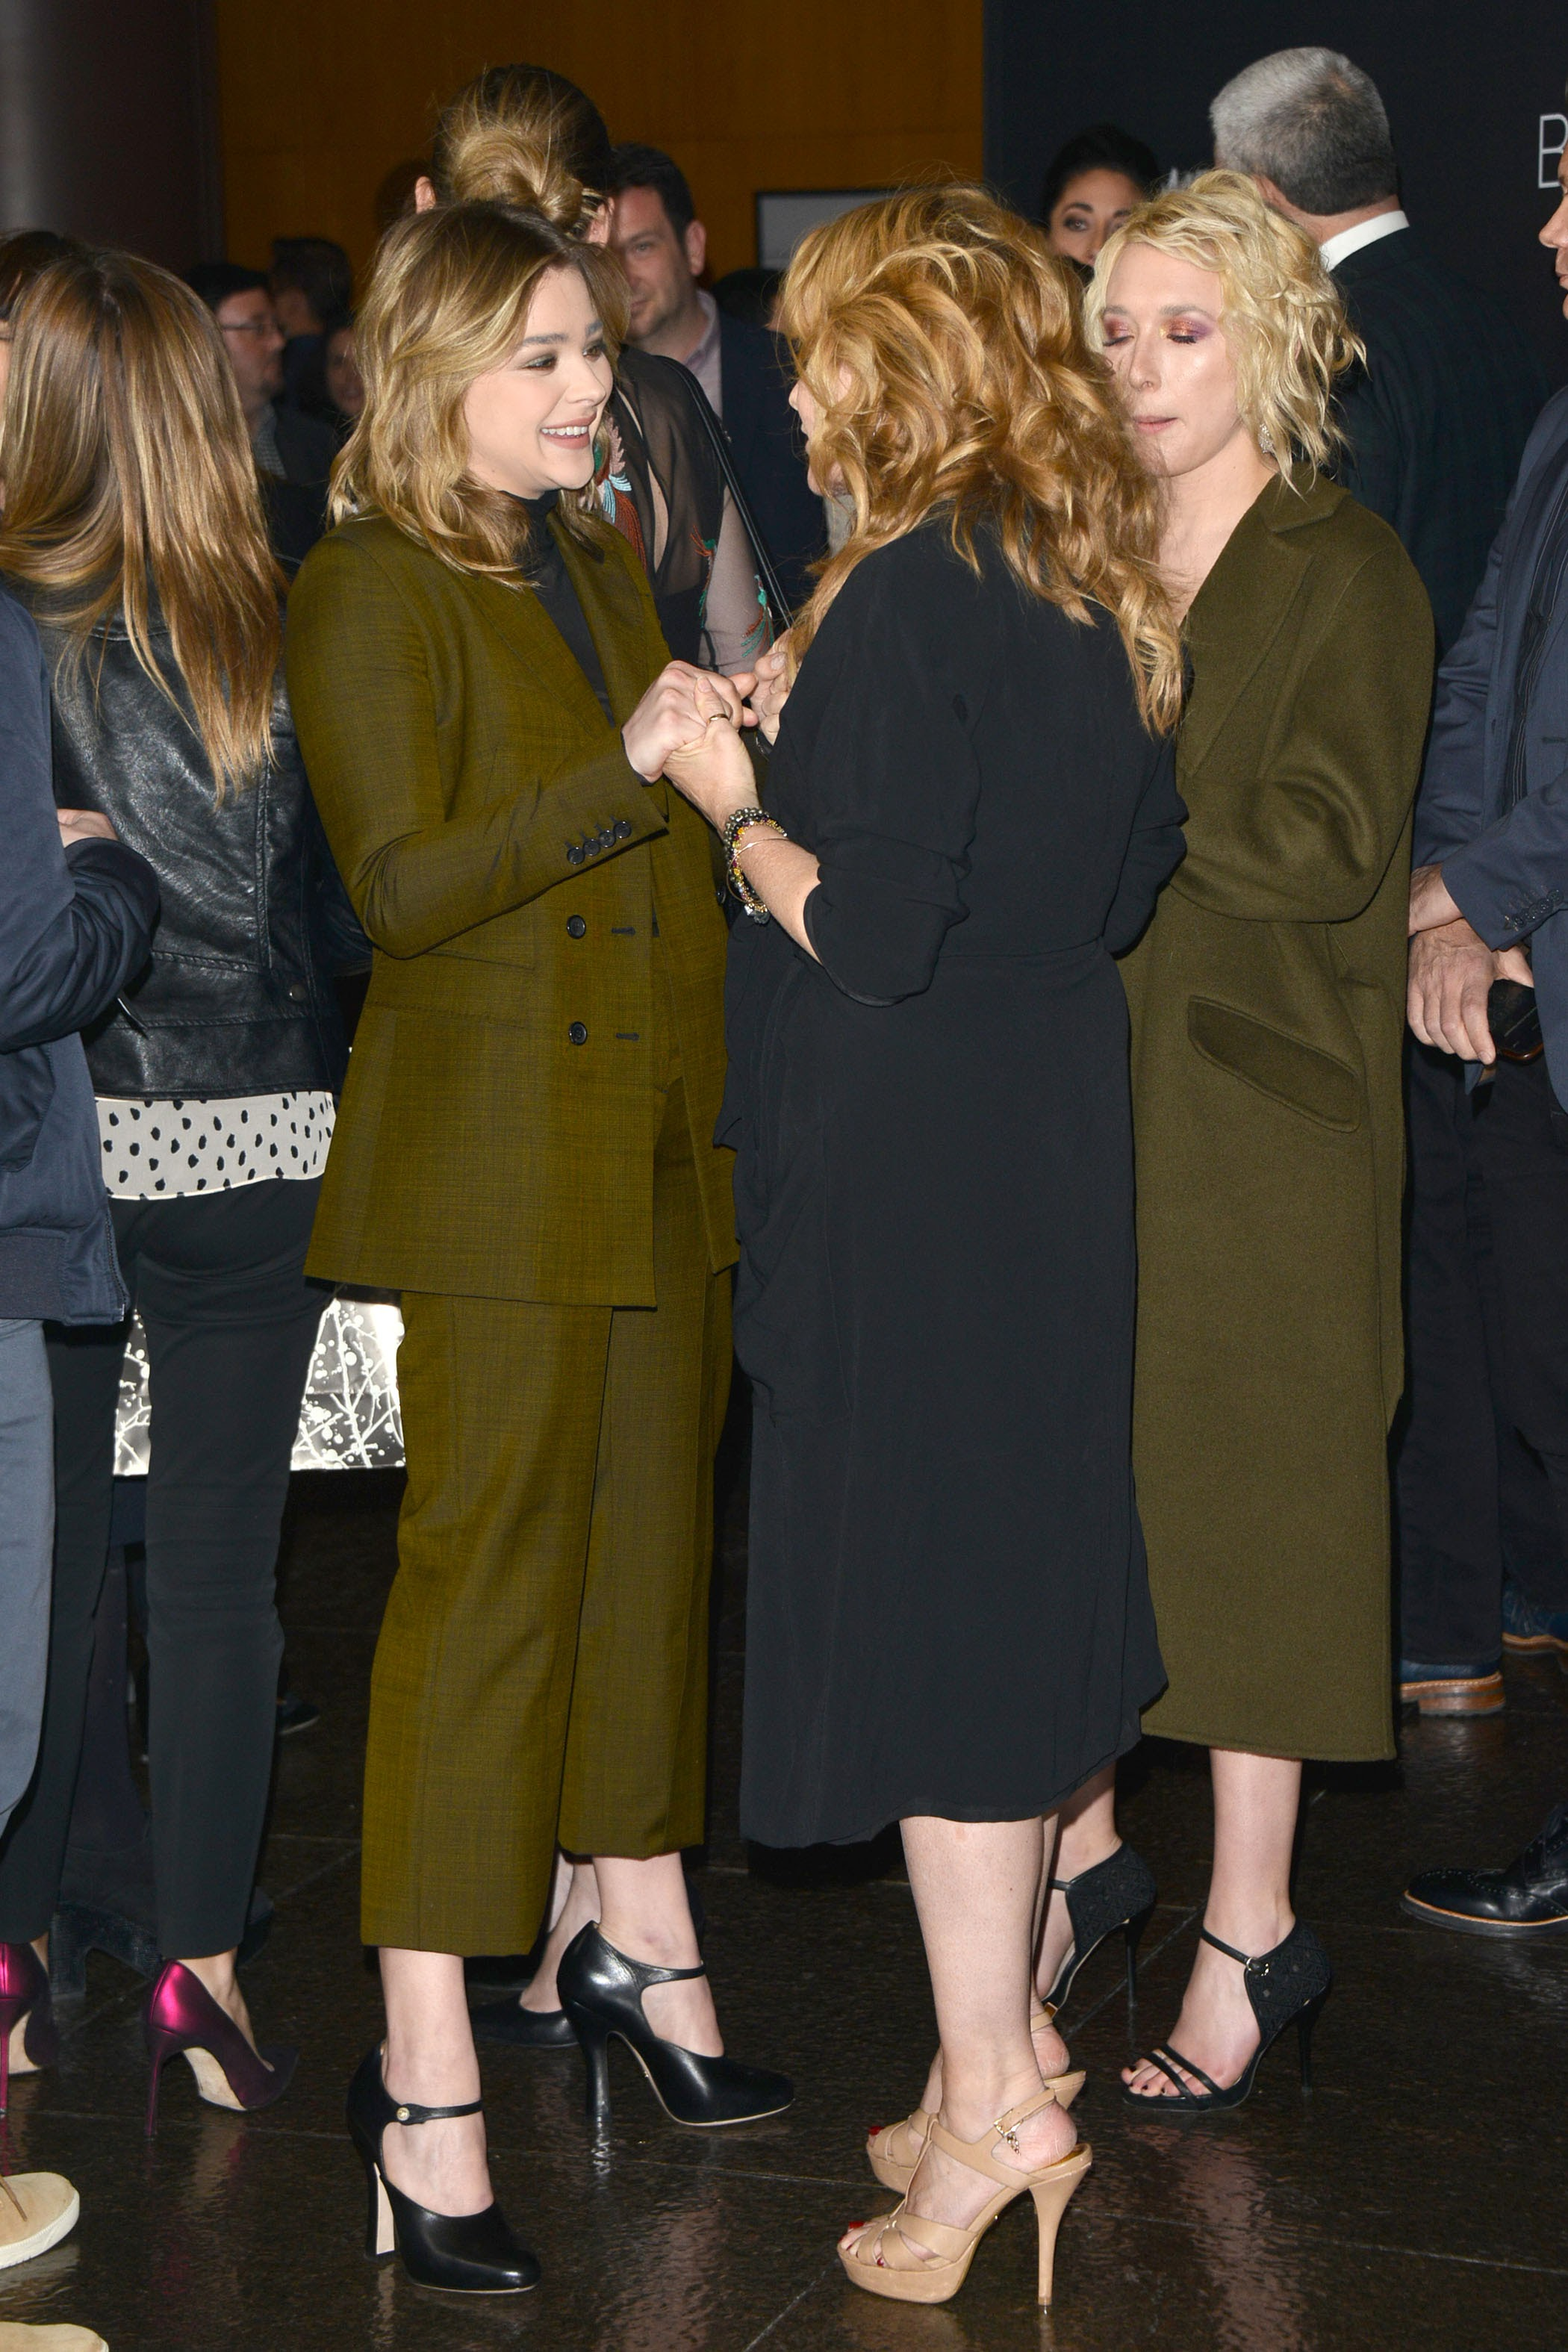 Chloe Moretz and Zoey Deutch of a premier screening of Before I Fall